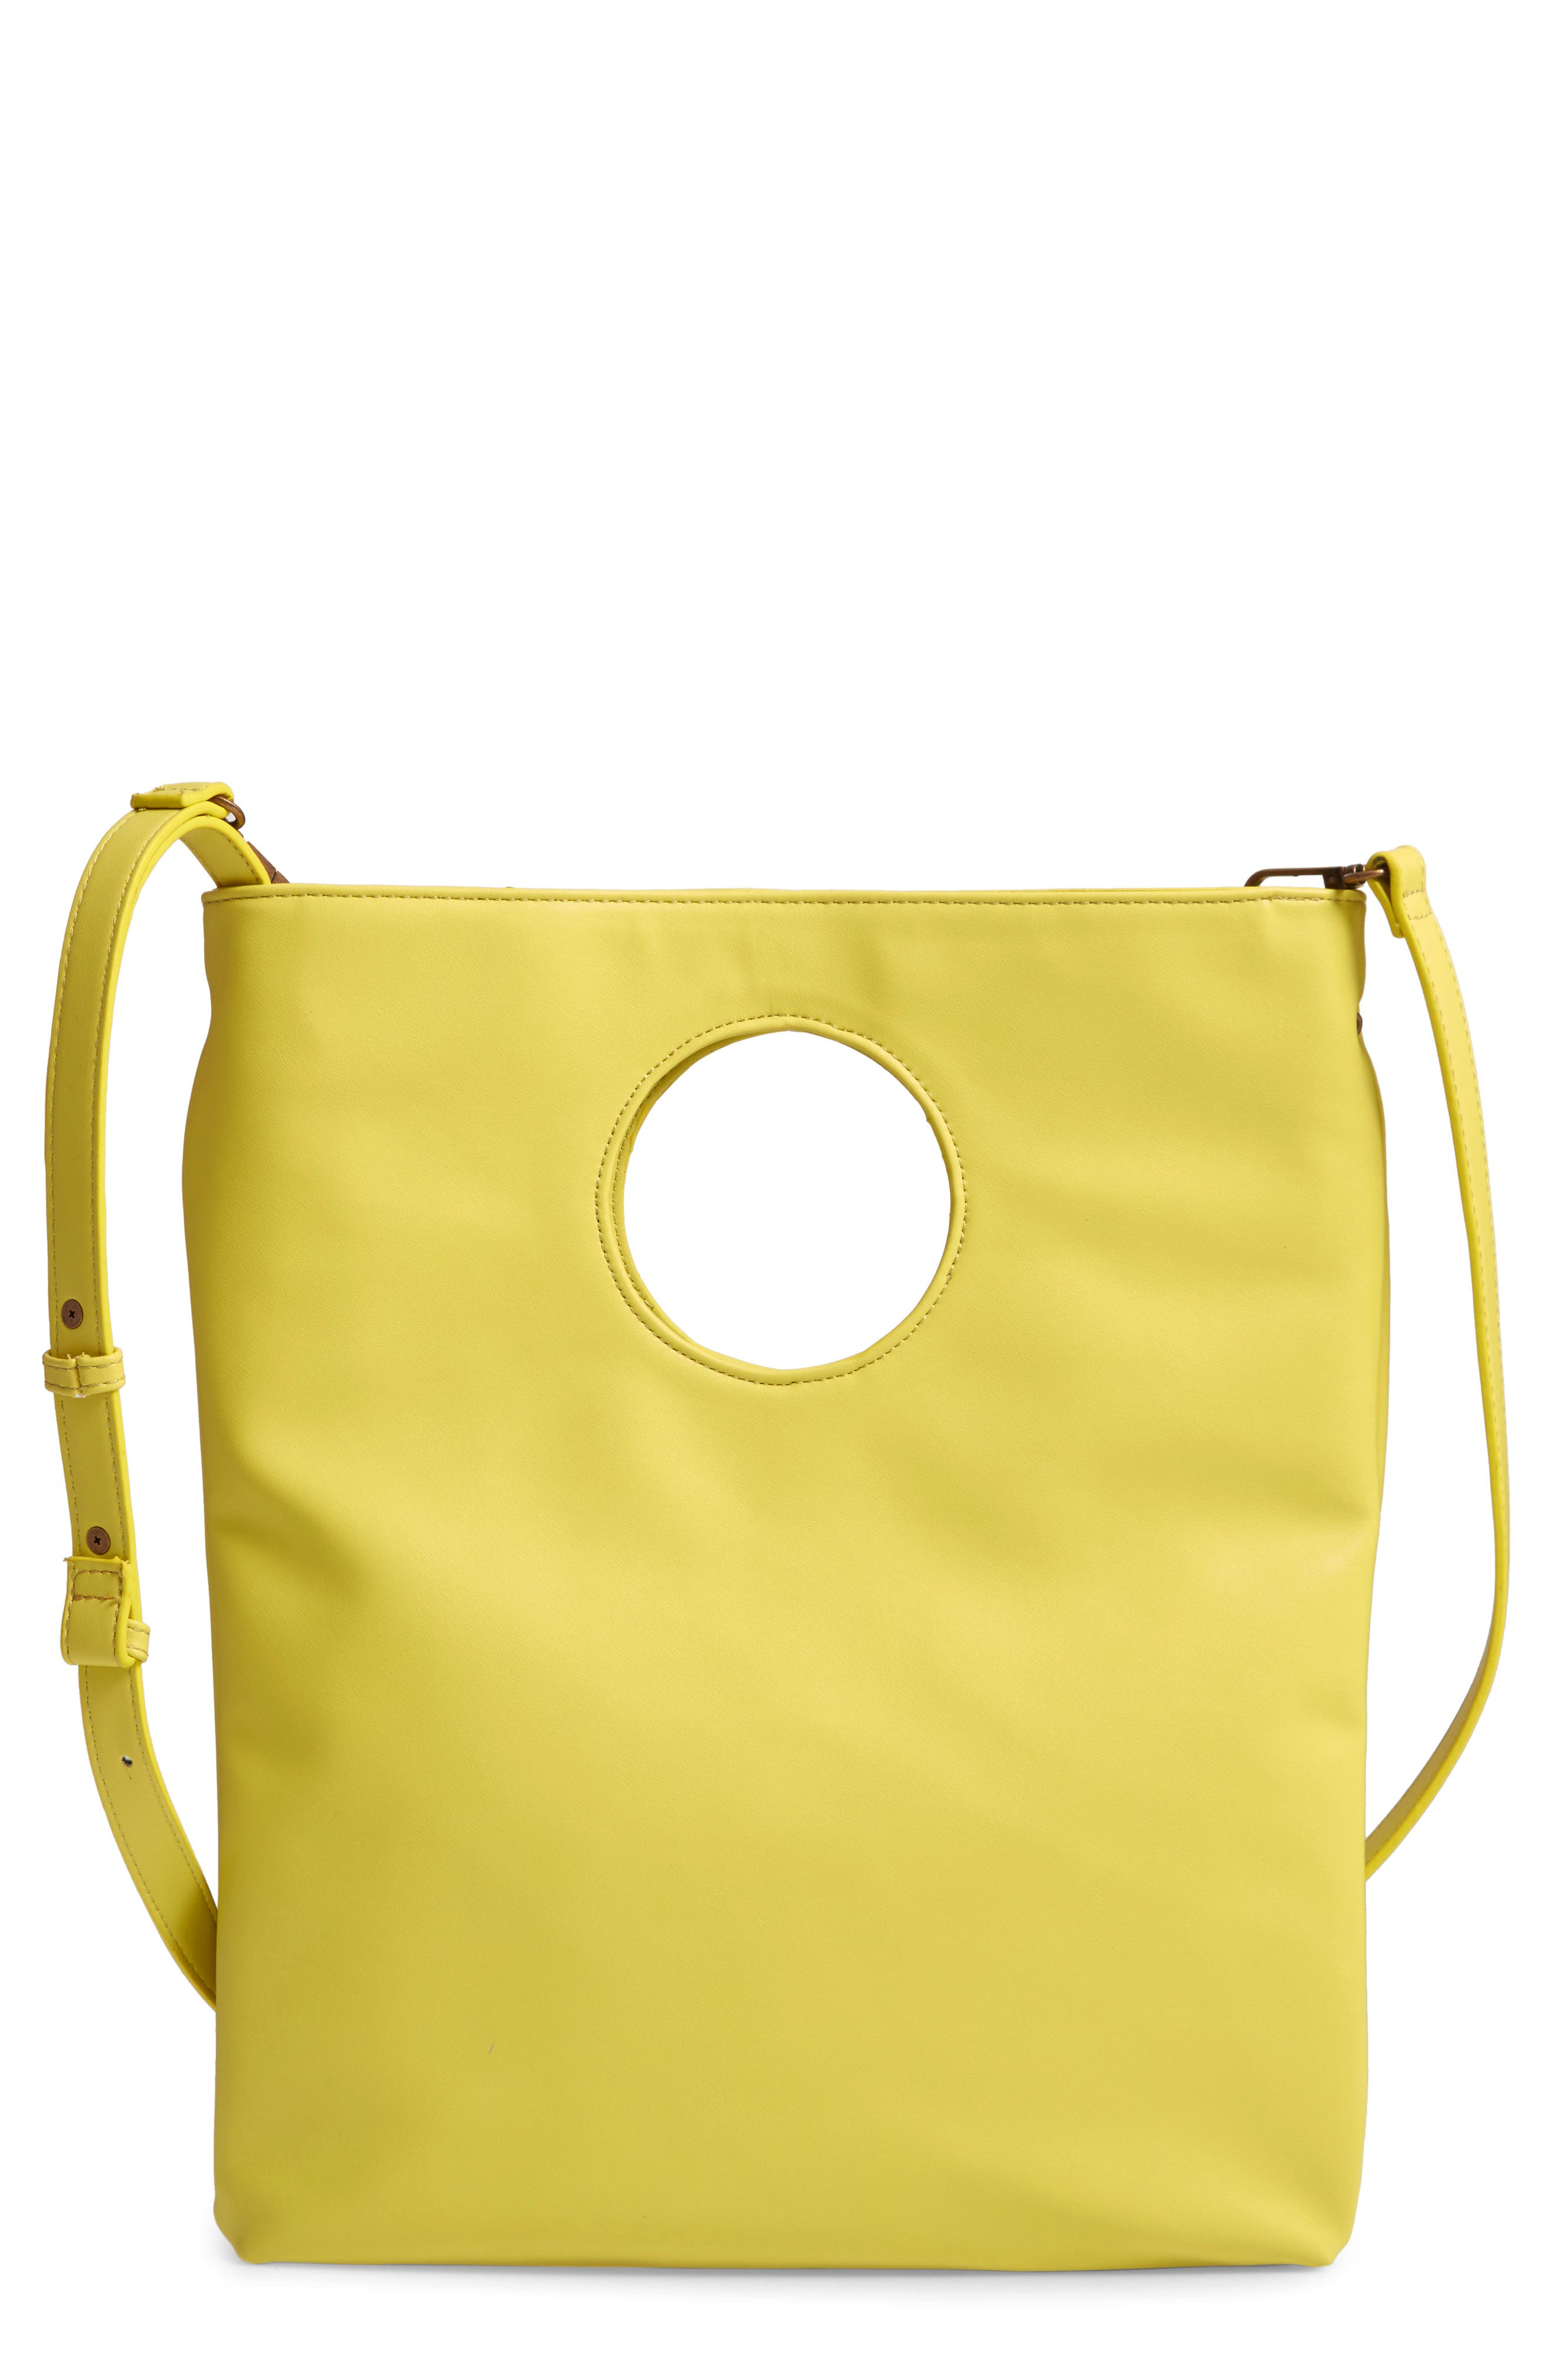 Yellow Handbags & Wallets for Women | Nordstrom